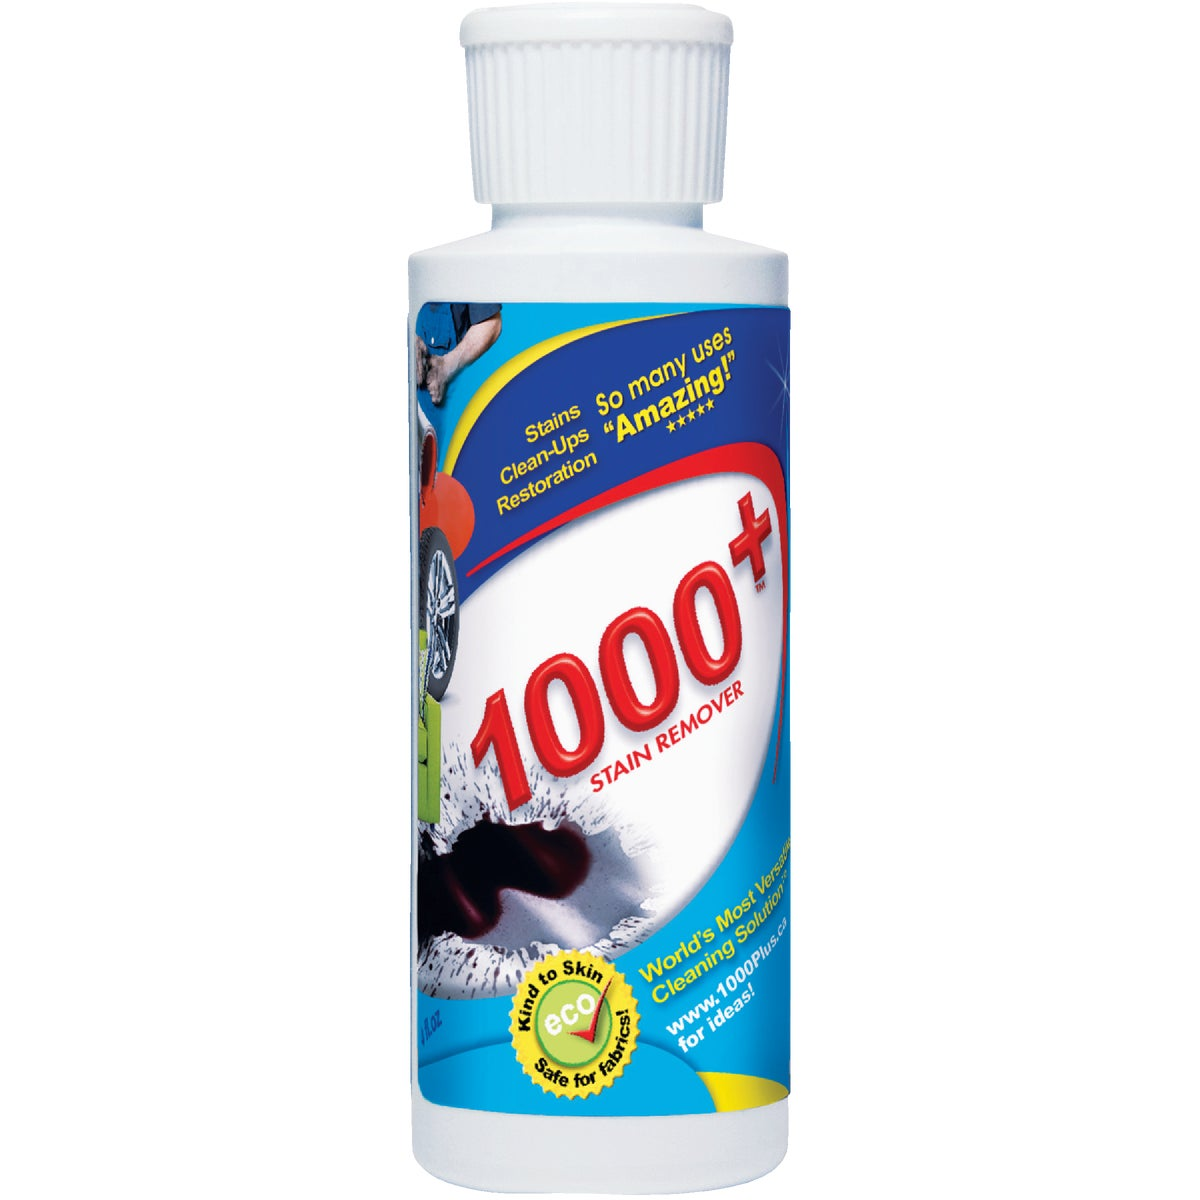 4OZ 1000+ STAIN REMOVER - WC201A by Winning Brands